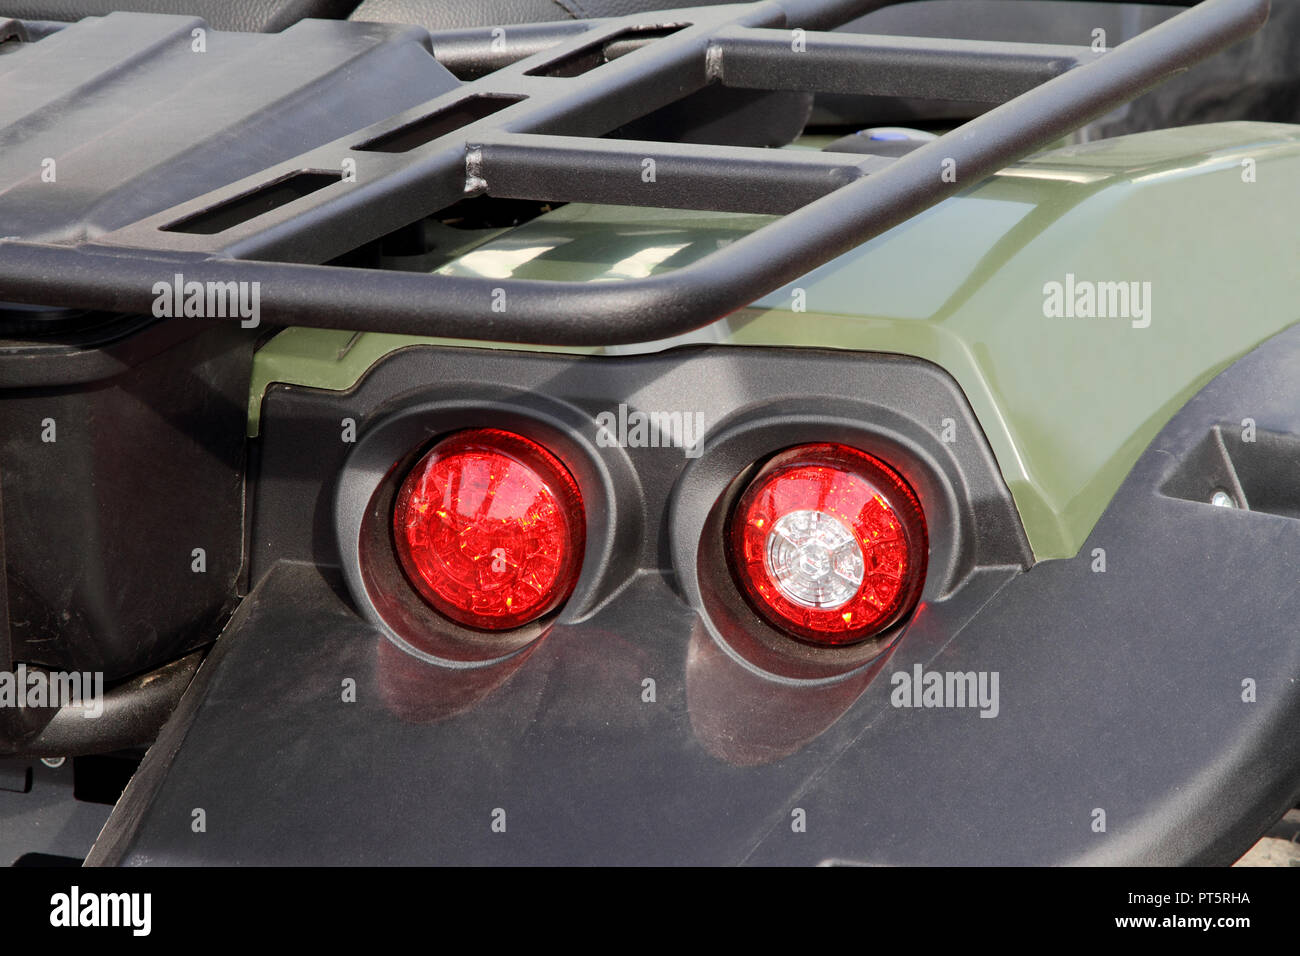 LED lamps of the modern ATV. - Stock Image